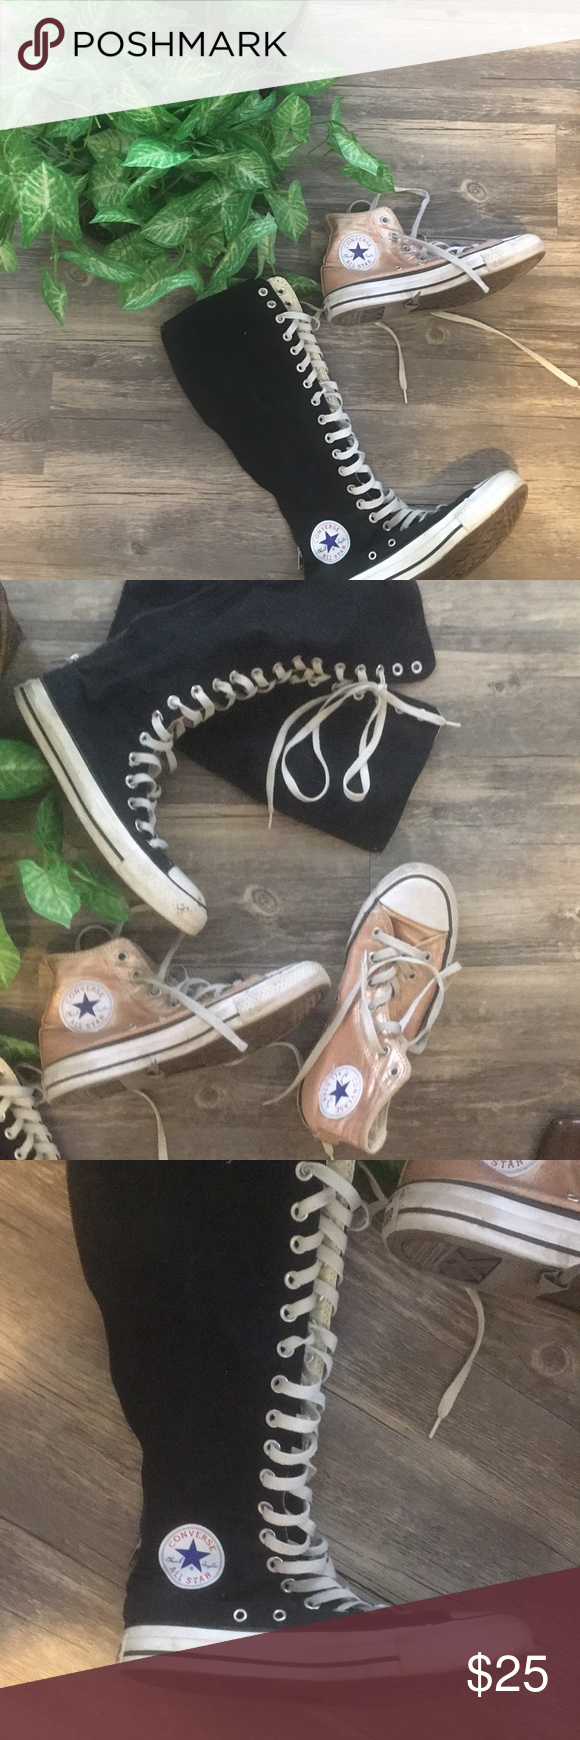 d1f2c76d92f0 Get two pairs of converse shoes for 30 dollars. Get both pair for one  price! Pink ones are a size 5.5 and the black ones are a size 6.